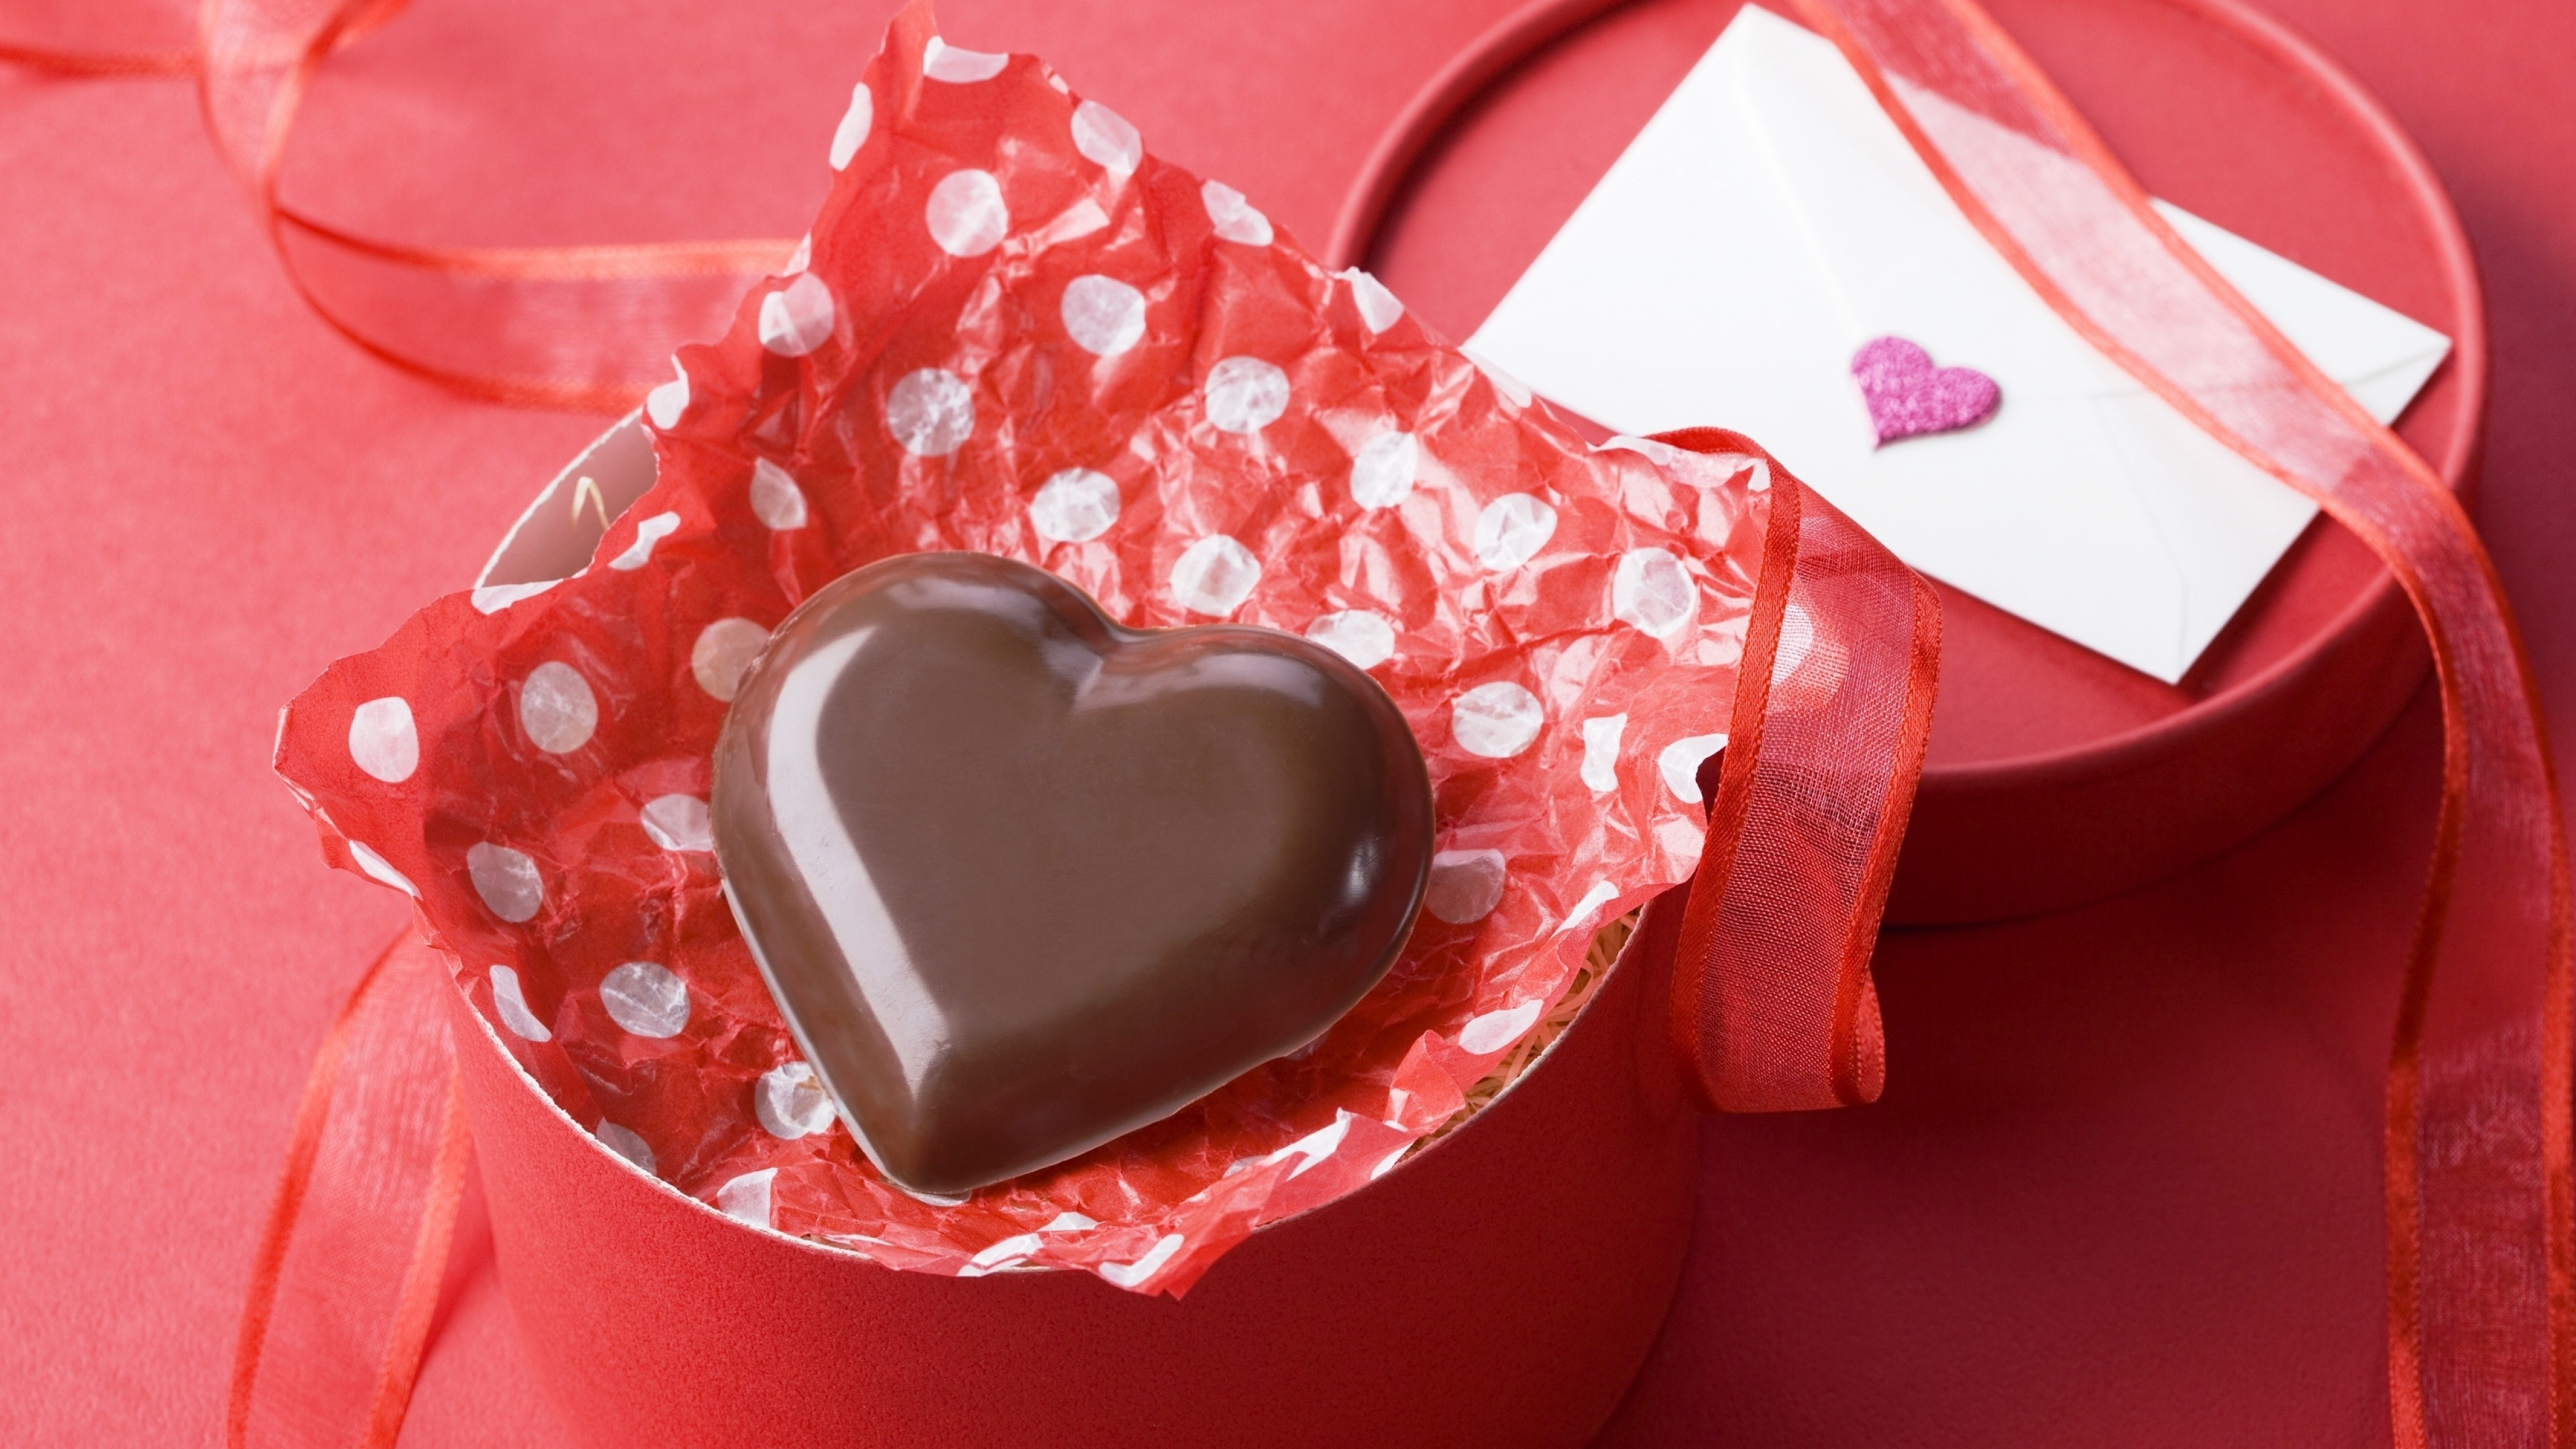 Wallpaper Valentines Day February 14 chocolate candy hearts 3840x2160